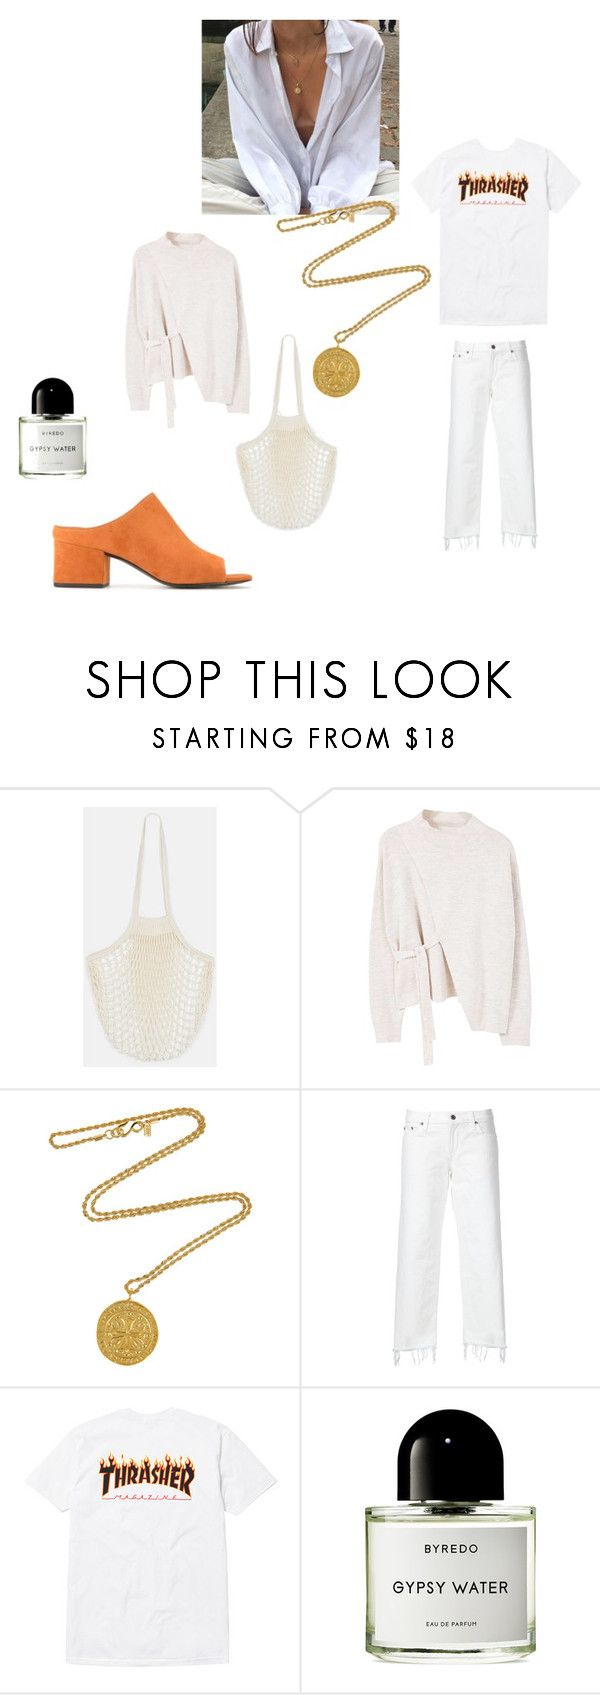 """""""Untitled #236"""" by fashiondisguise on Polyvore featuring MANGO, Kenneth Jay Lane, Simon Miller, Byredo and 3.1 Phillip Lim"""